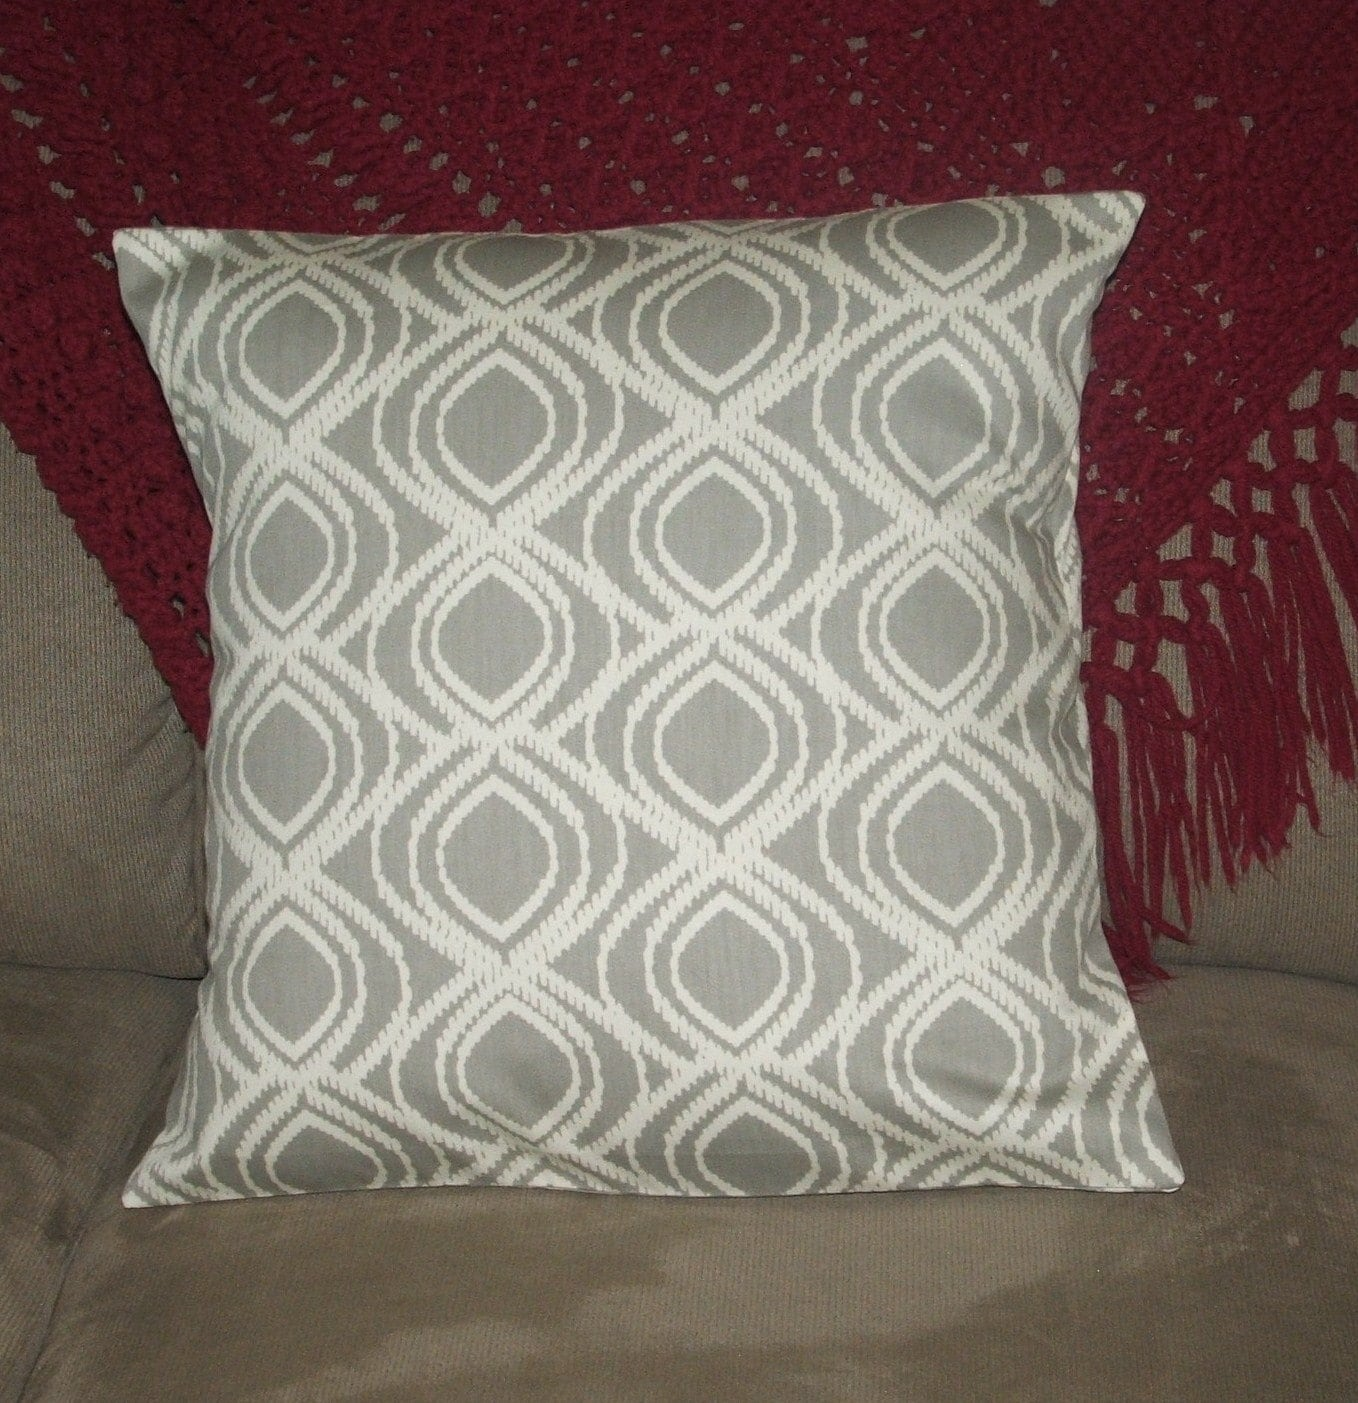 Throw Pillow Fabric Calculator : Pillow Cover, Gray and White, Geometric Design, Decorative Pillow Cover, Throw Pillow Cover, 18 ...